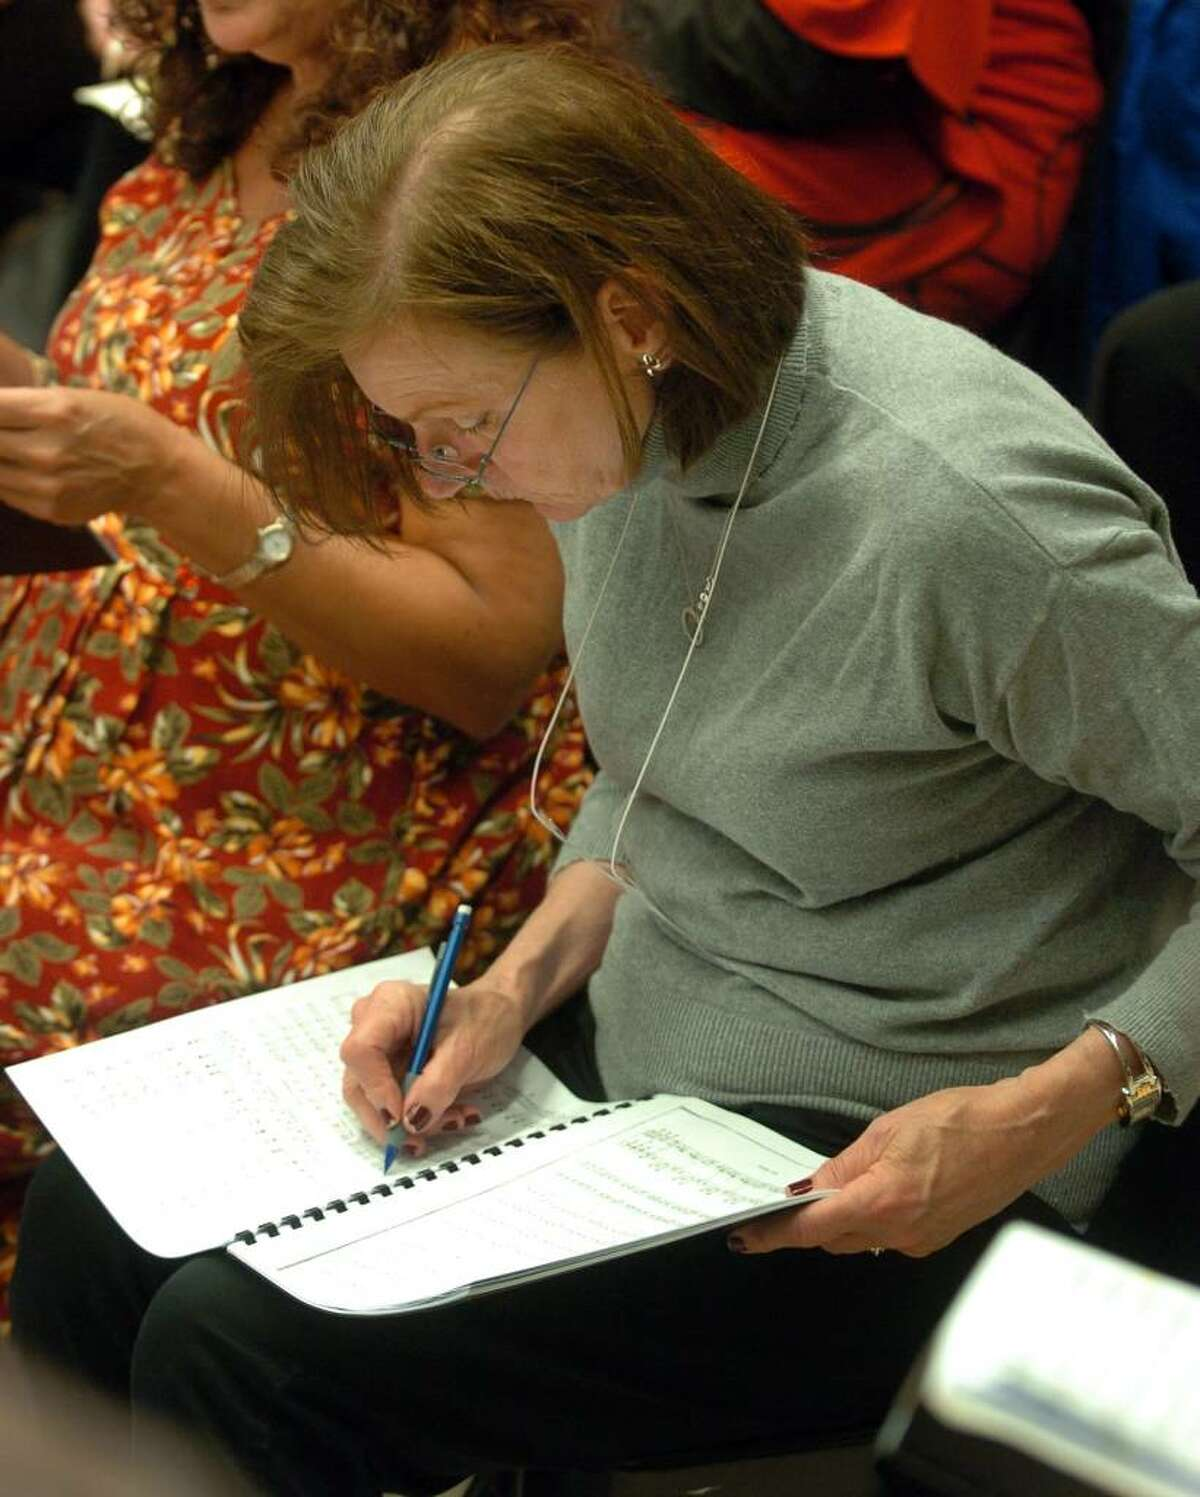 The Mendelssohn Choir rehearses at Staples High in Westpost, Conn. on Tuesday Sept. 29, 2009. Here, choir member Audrey Williams makes notations in her book during rehearsal of